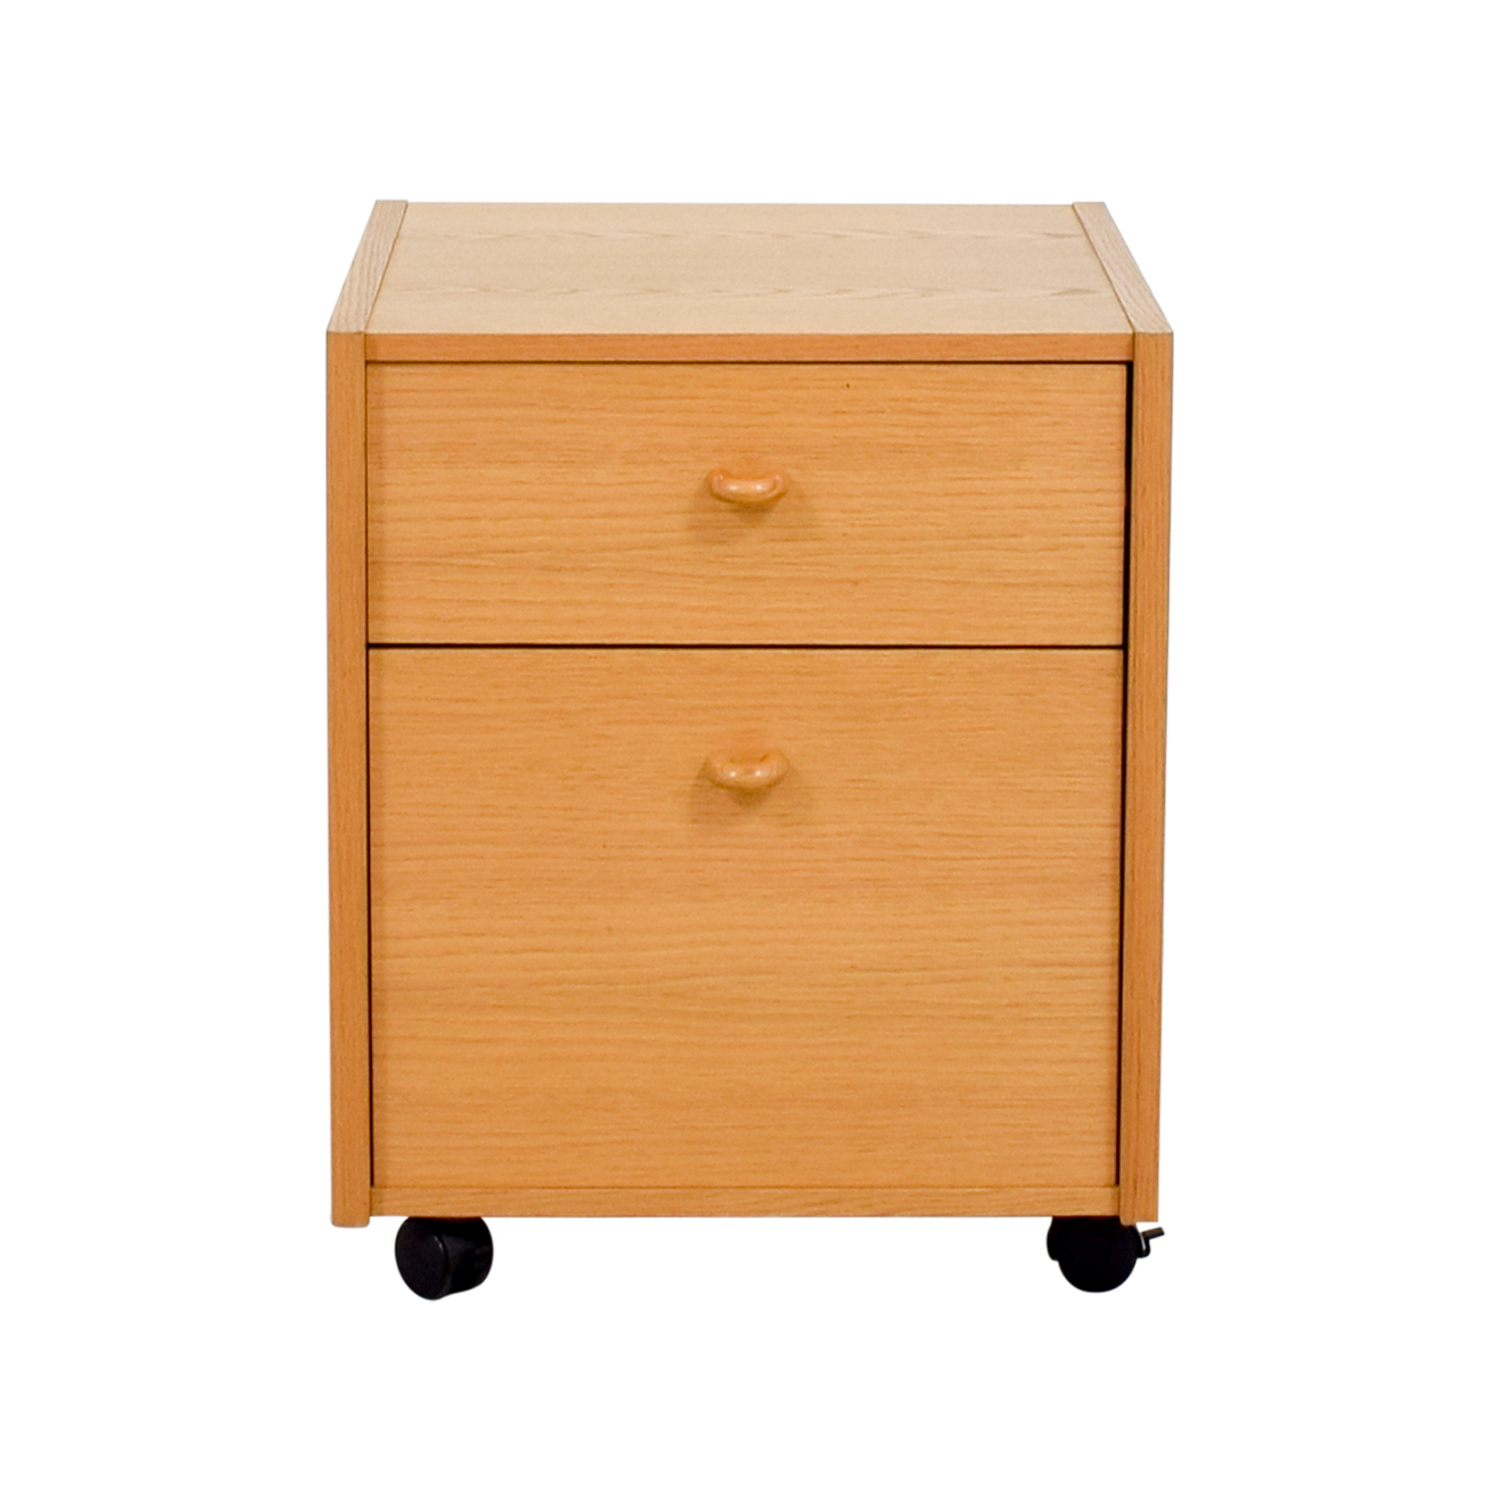 Oak Filing Cabinet for sale